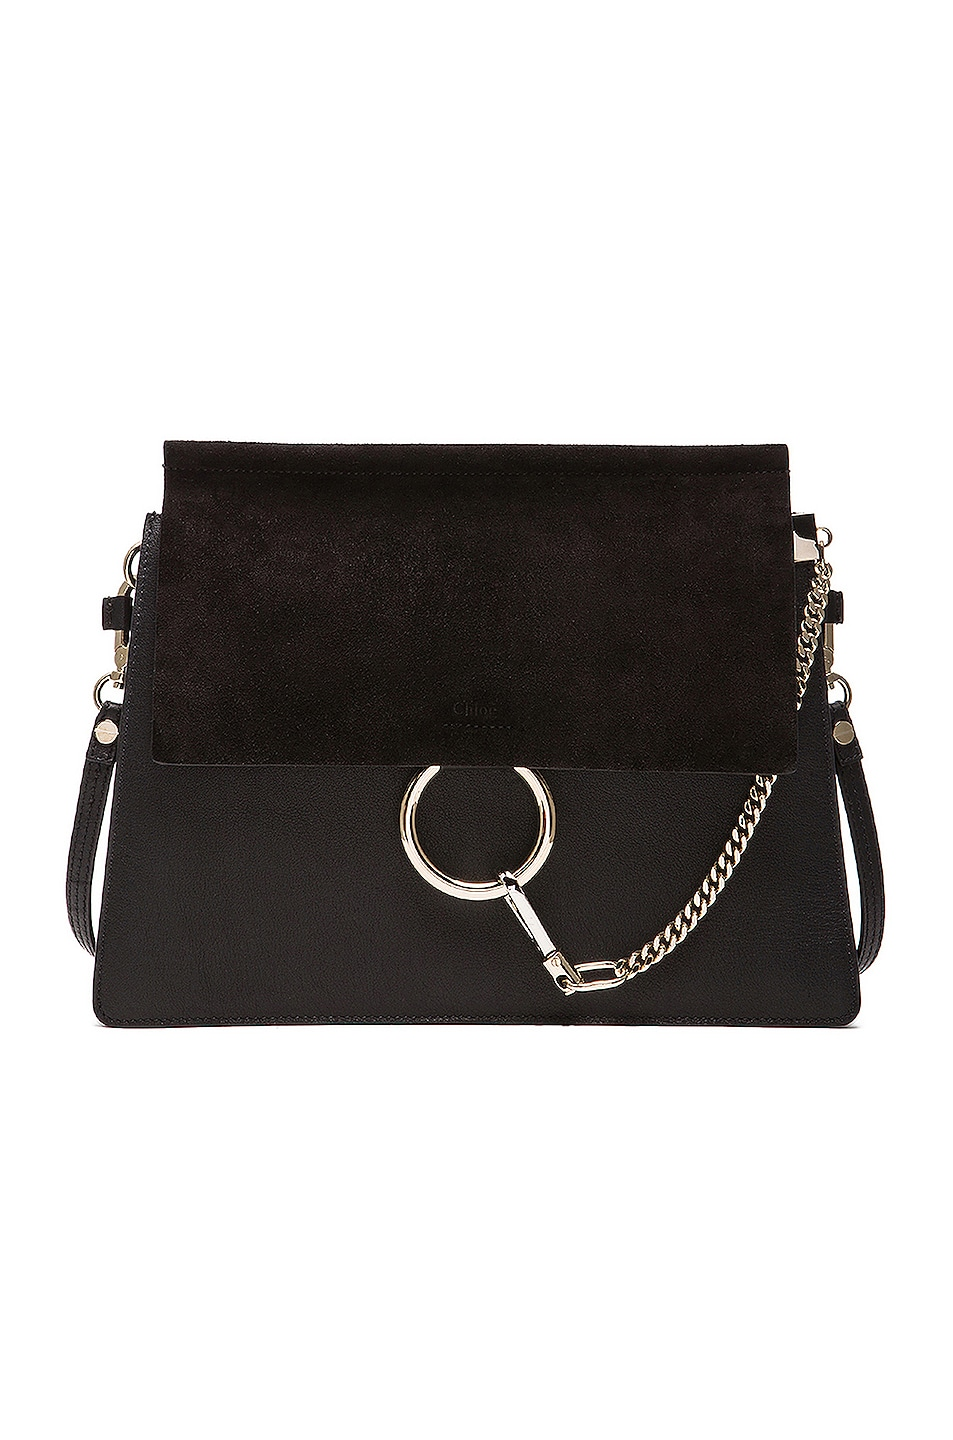 Image 1 of Chloe Medium Faye Bag in Black